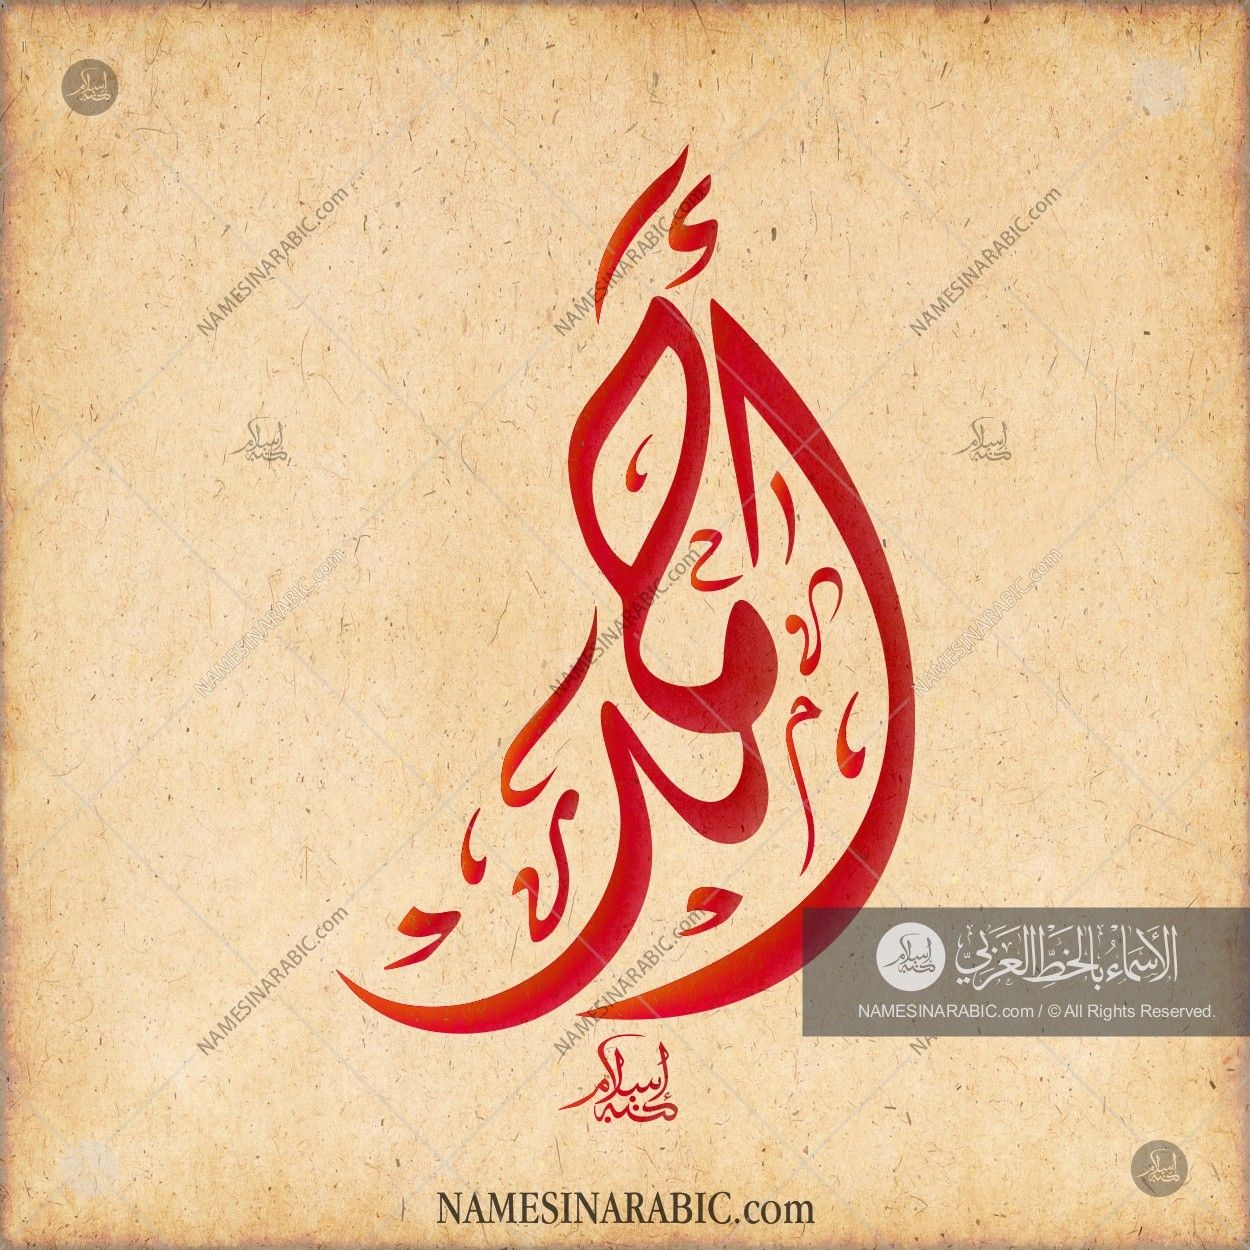 Ahmad احمد Names In Arabic Calligraphy Name 5252 Arabic Calligraphy Design Islamic Art Calligraphy Calligraphy Name